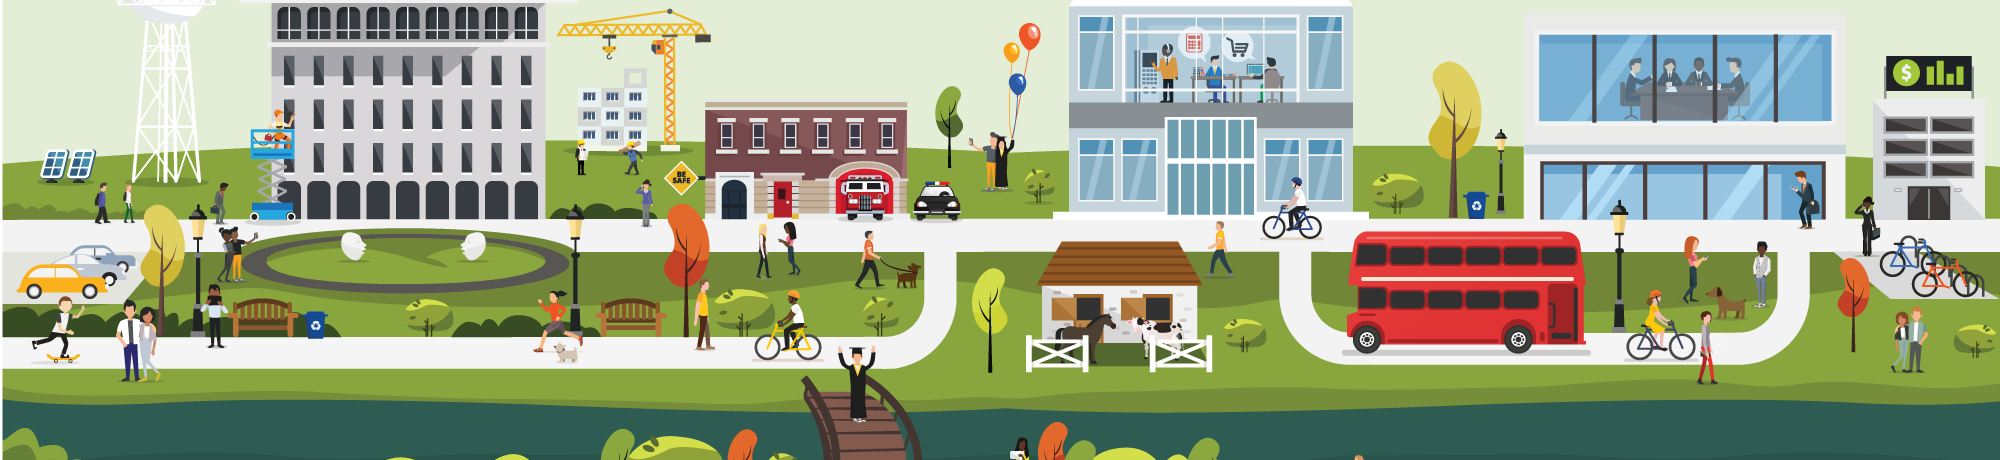 UC Davis FOA illustration shows a variety of campus buildings, infrastructure and types of workers